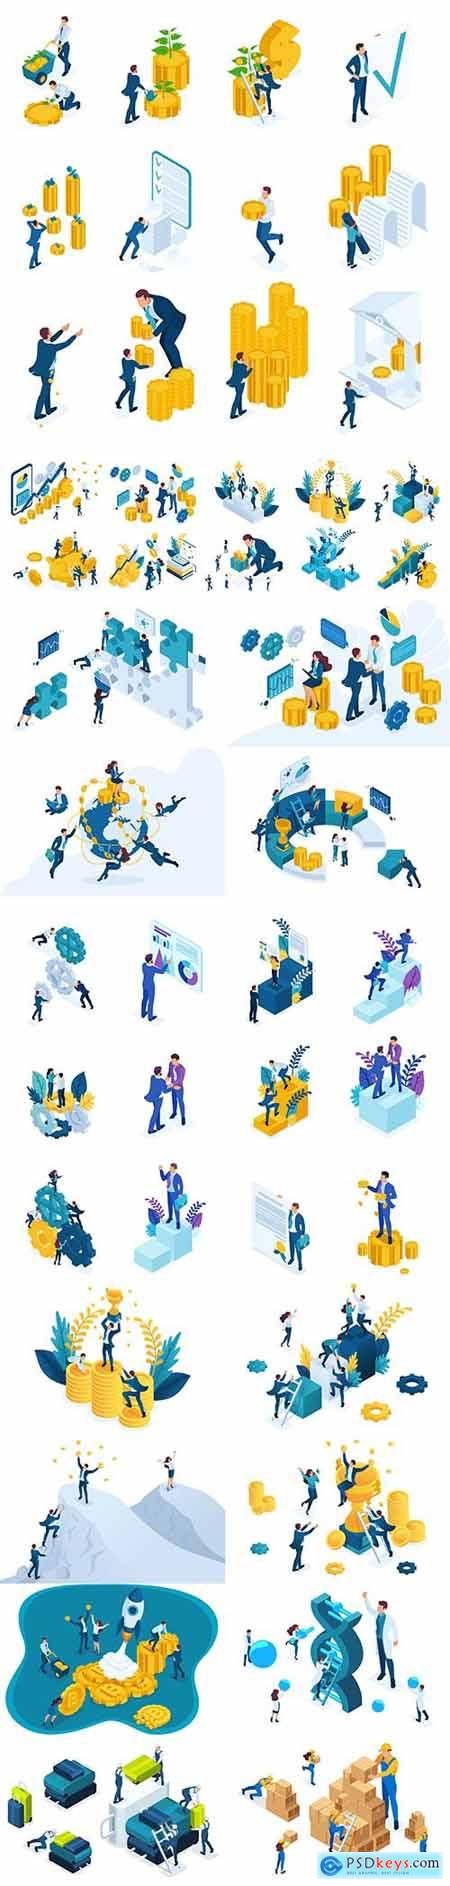 Flat isometric vector 3D concept illustration 60